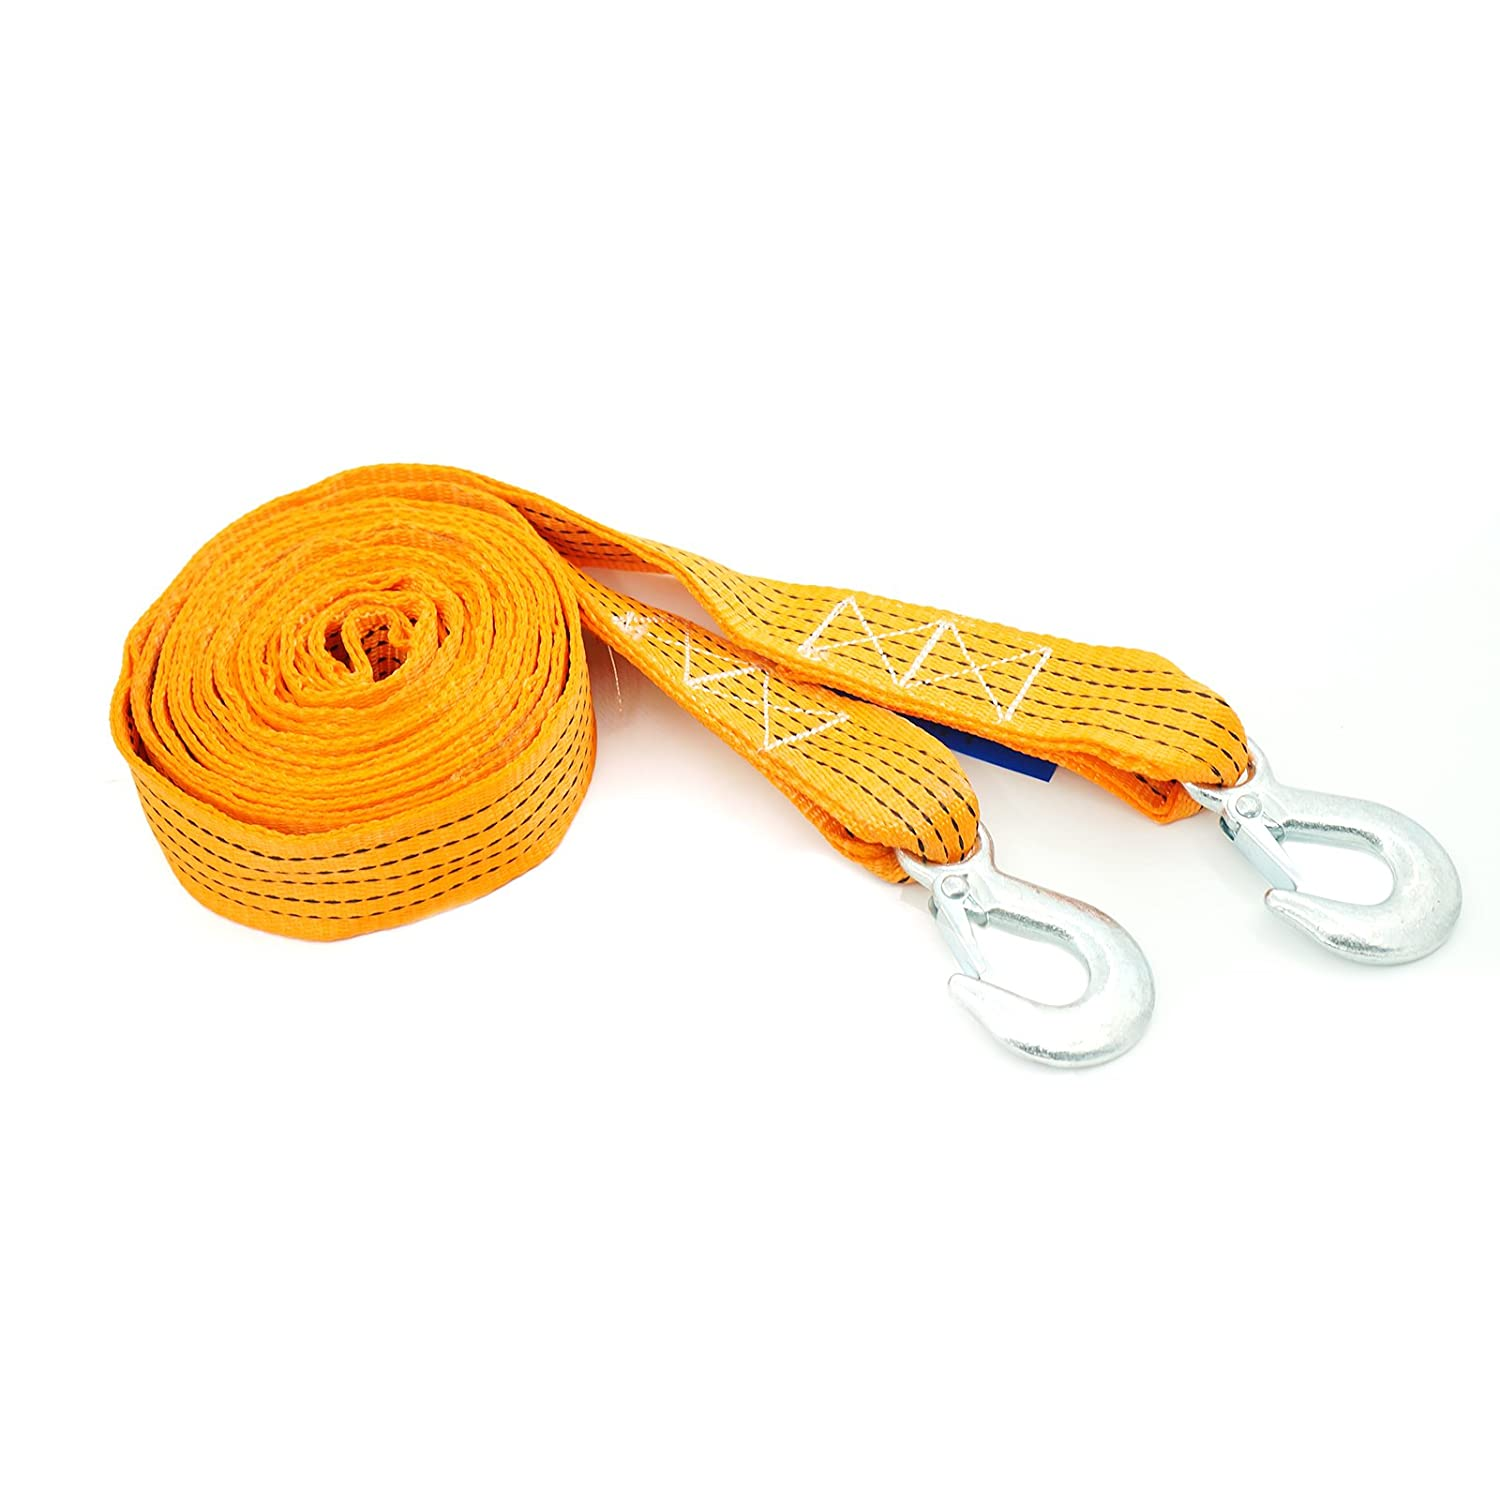 Spurtar Polyethylene Towing Straps 4 Ton 197/'/'x1.77/'/' Heavy Duty Tow Rope with Steel Hook 8,800lb Towing Recovery